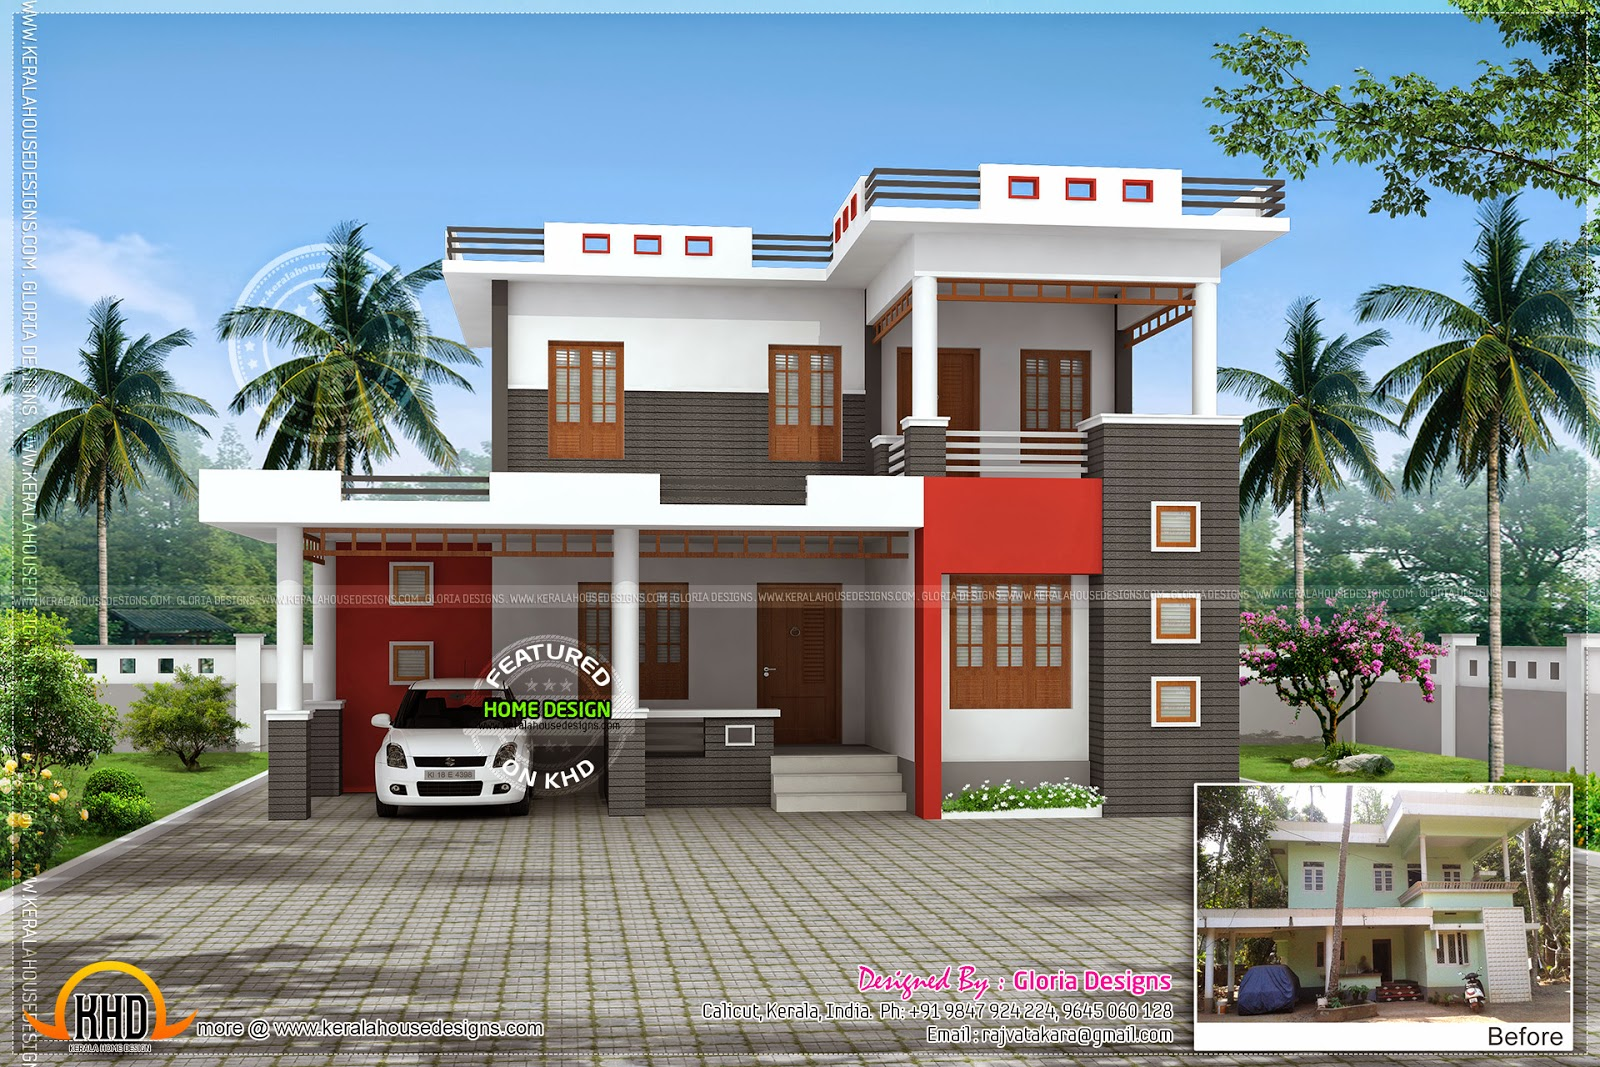 Renovation 3d model for an old house kerala home design for Homes models and plans